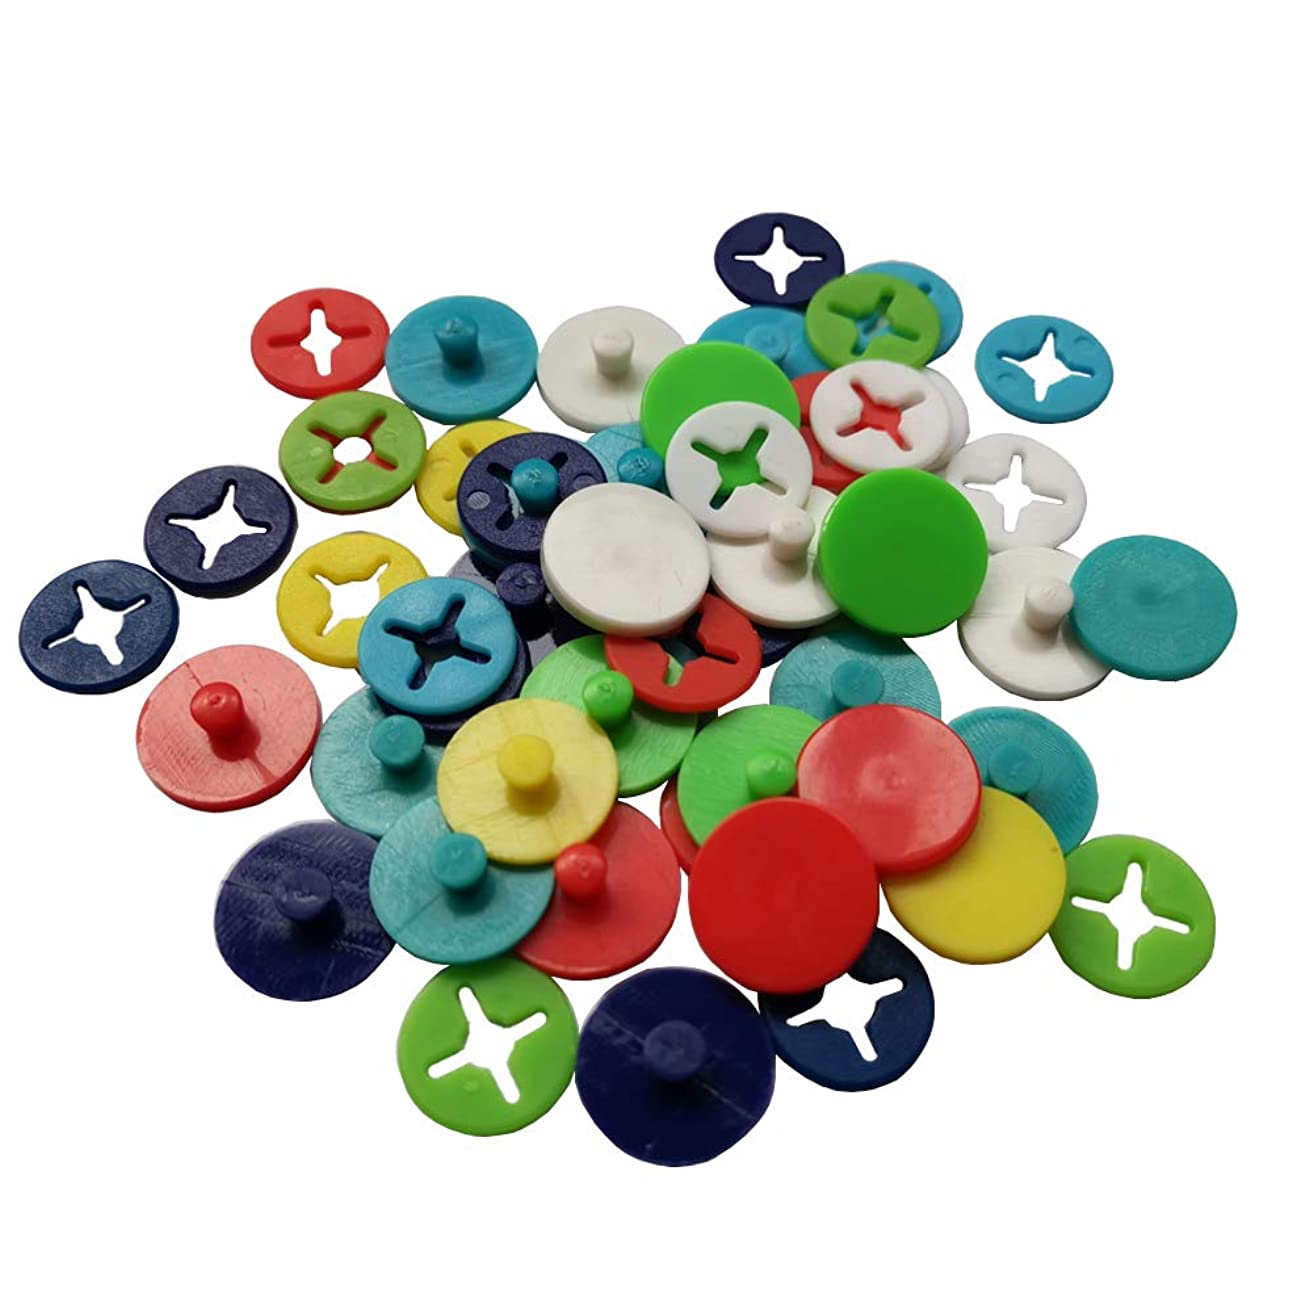 Whale GoGo 32 PCS Race Marathon Number Buckles Fasteners Holders Running Bib Fixing Clips, Mixed Colors